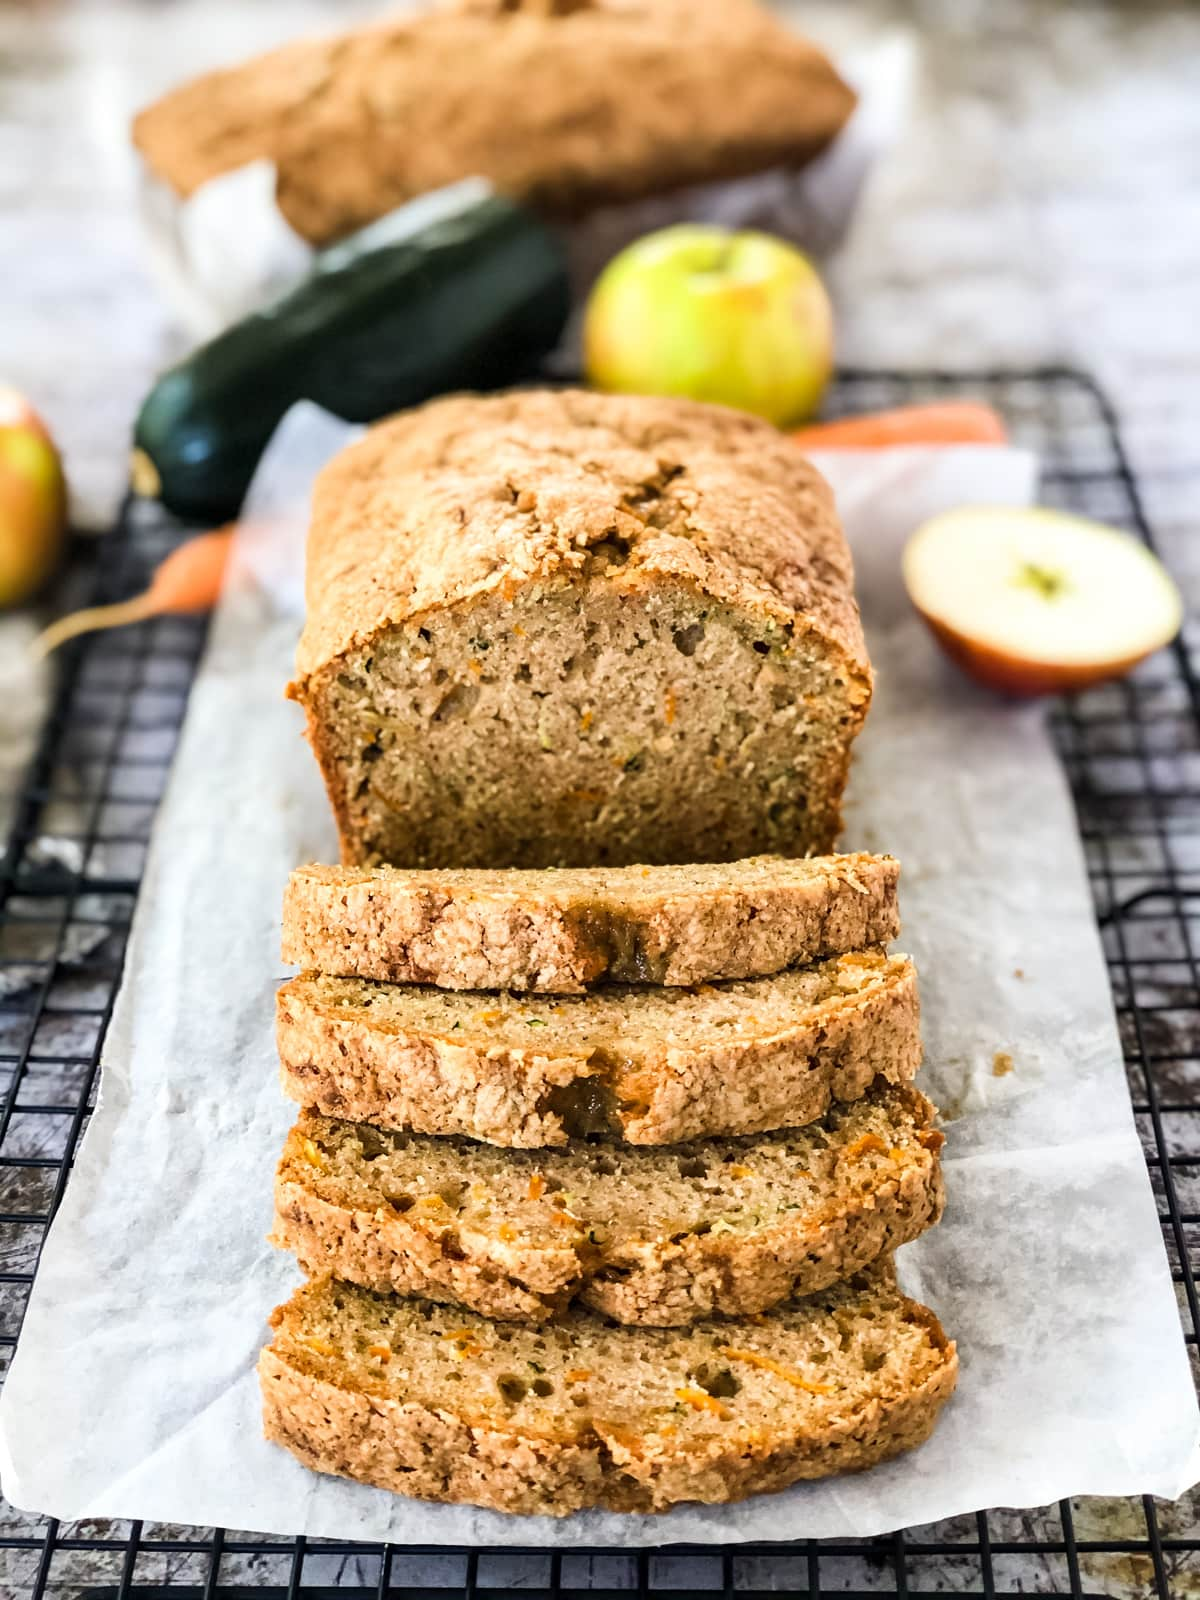 A front view of a loaf of Carrot Zucchini Apple Bread cut into slices.